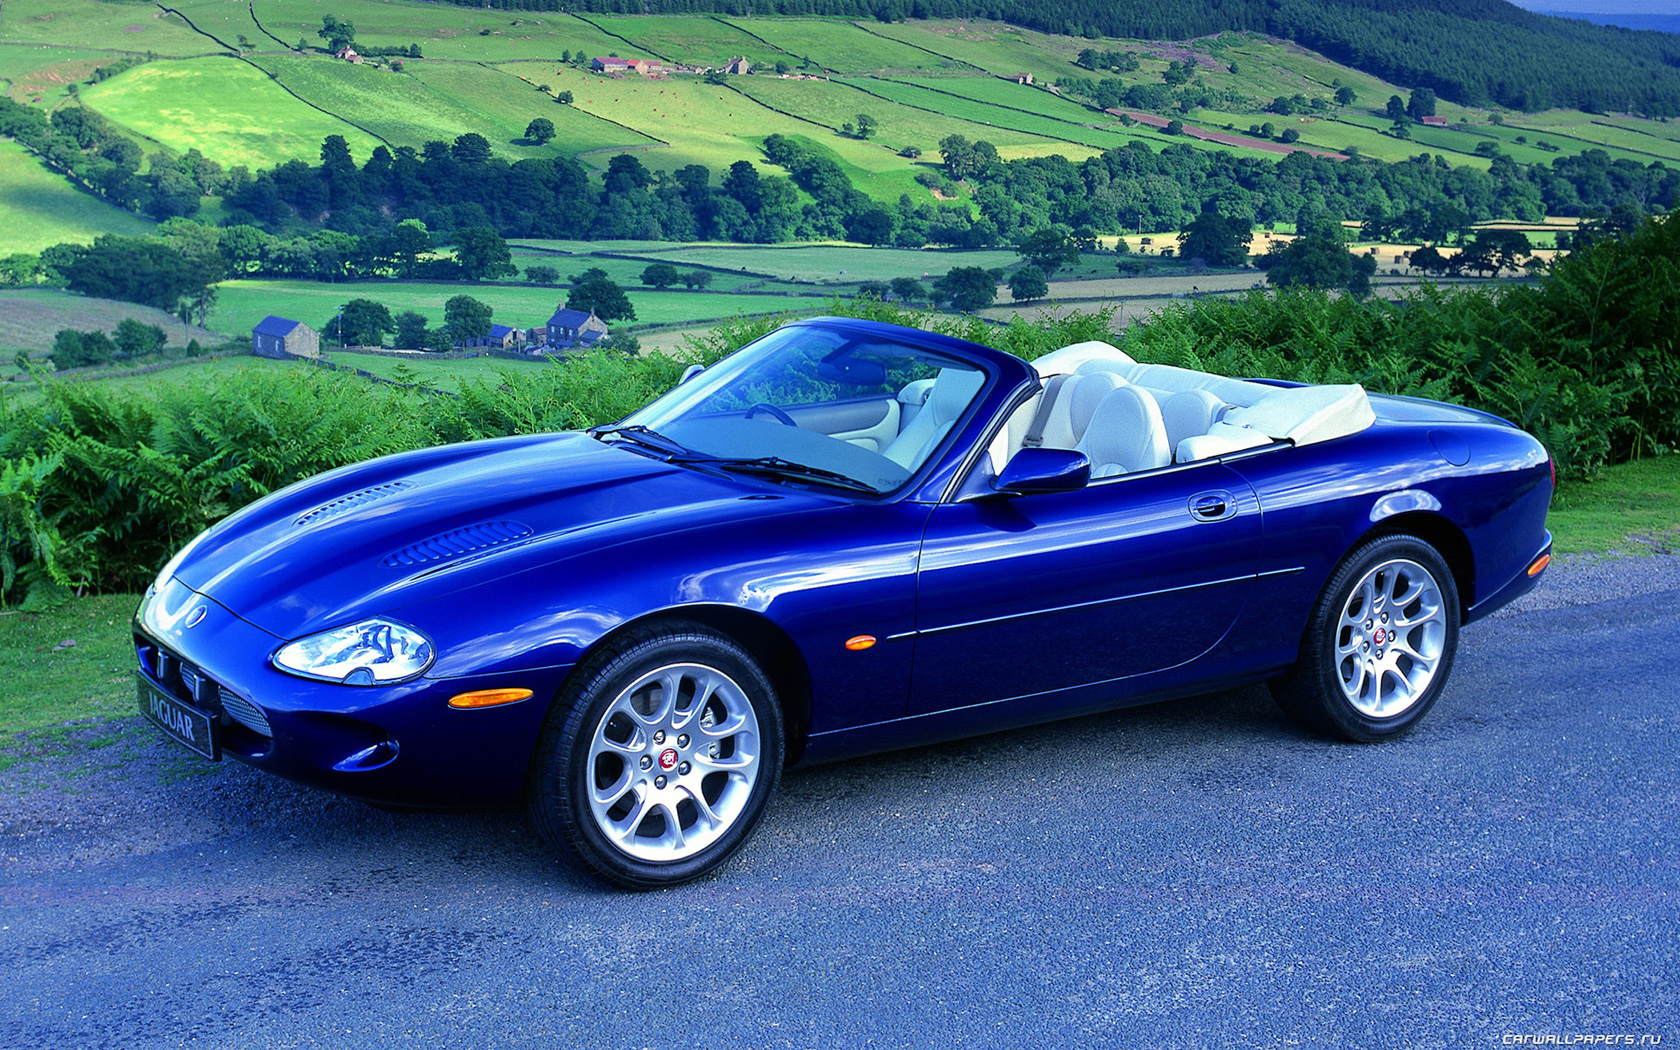 Jaguar Xkr 2002 Review Amazing Pictures And Images